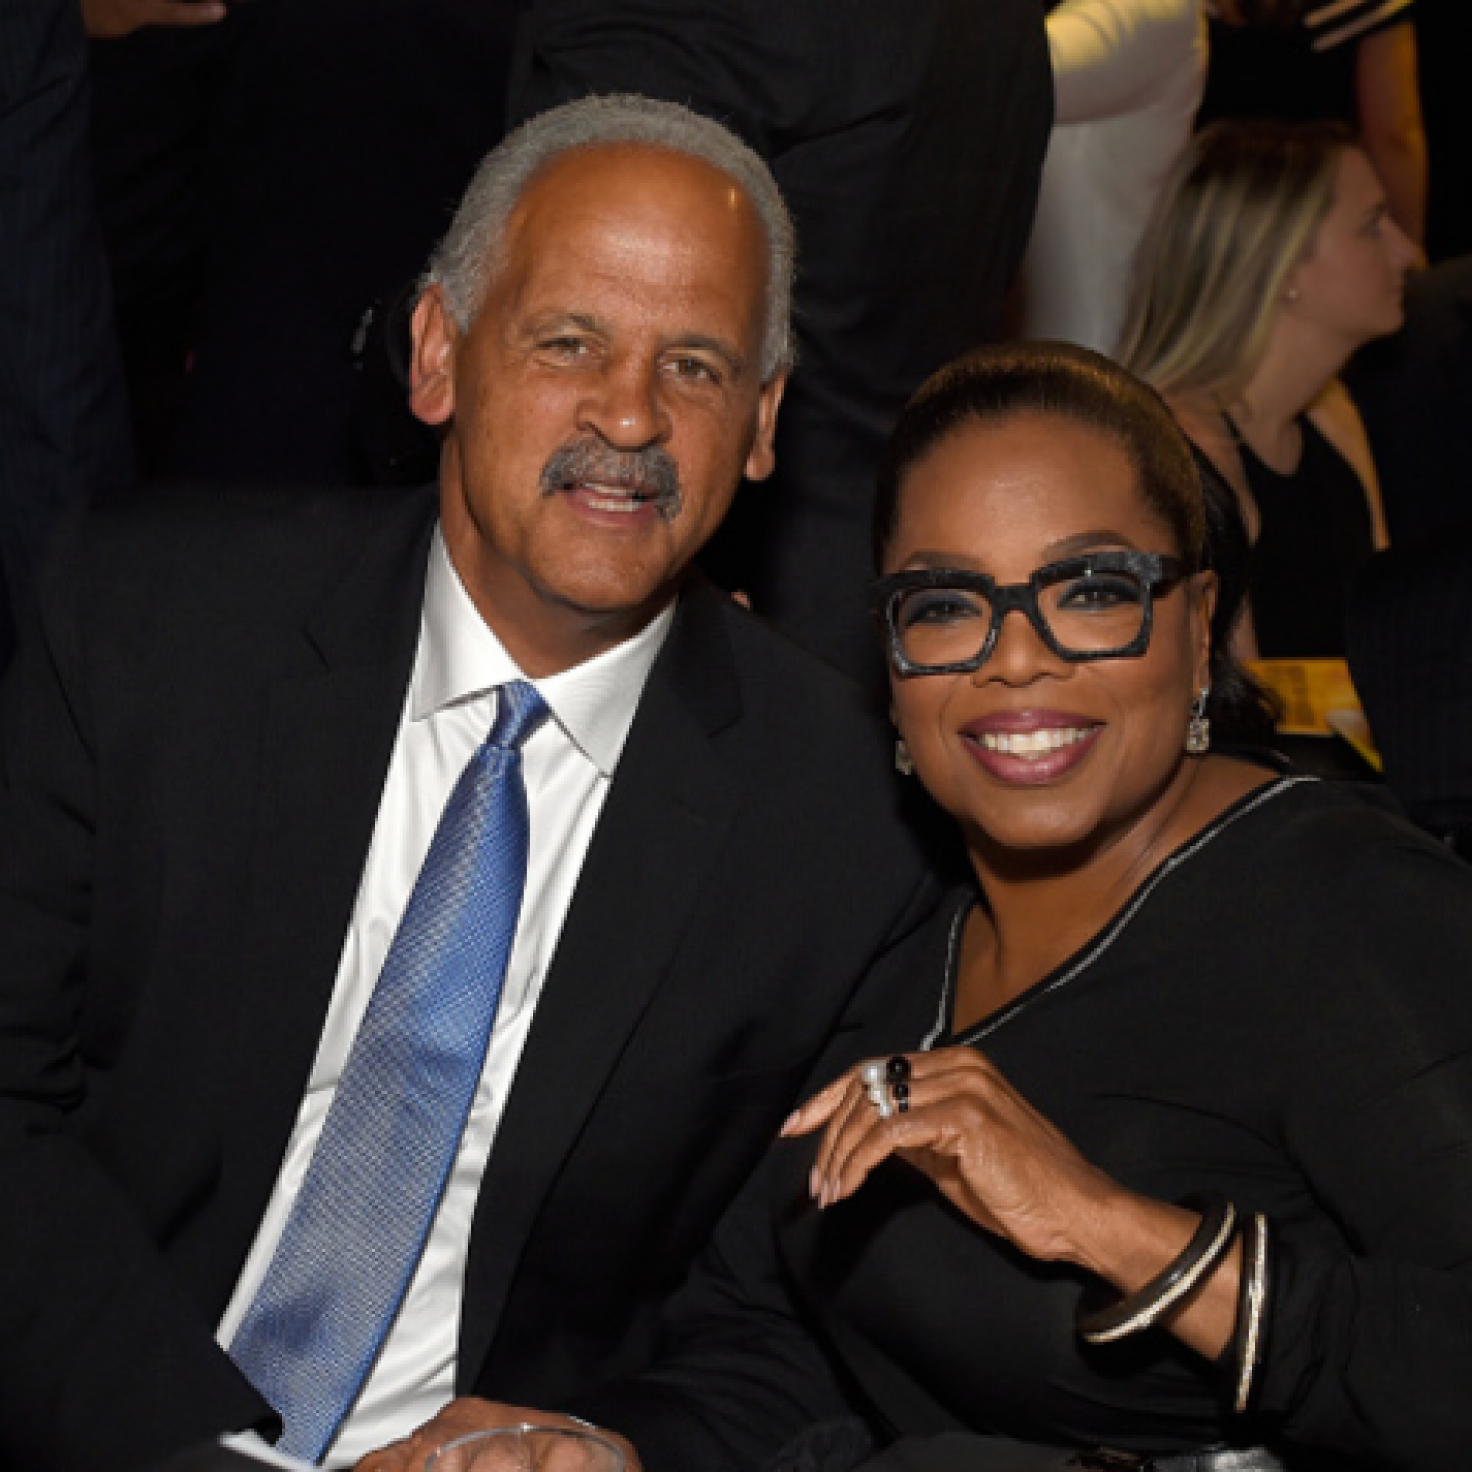 Watch Oprah's Longtime Partner Stedman Graham Show Off His Haircutting Skills At Home